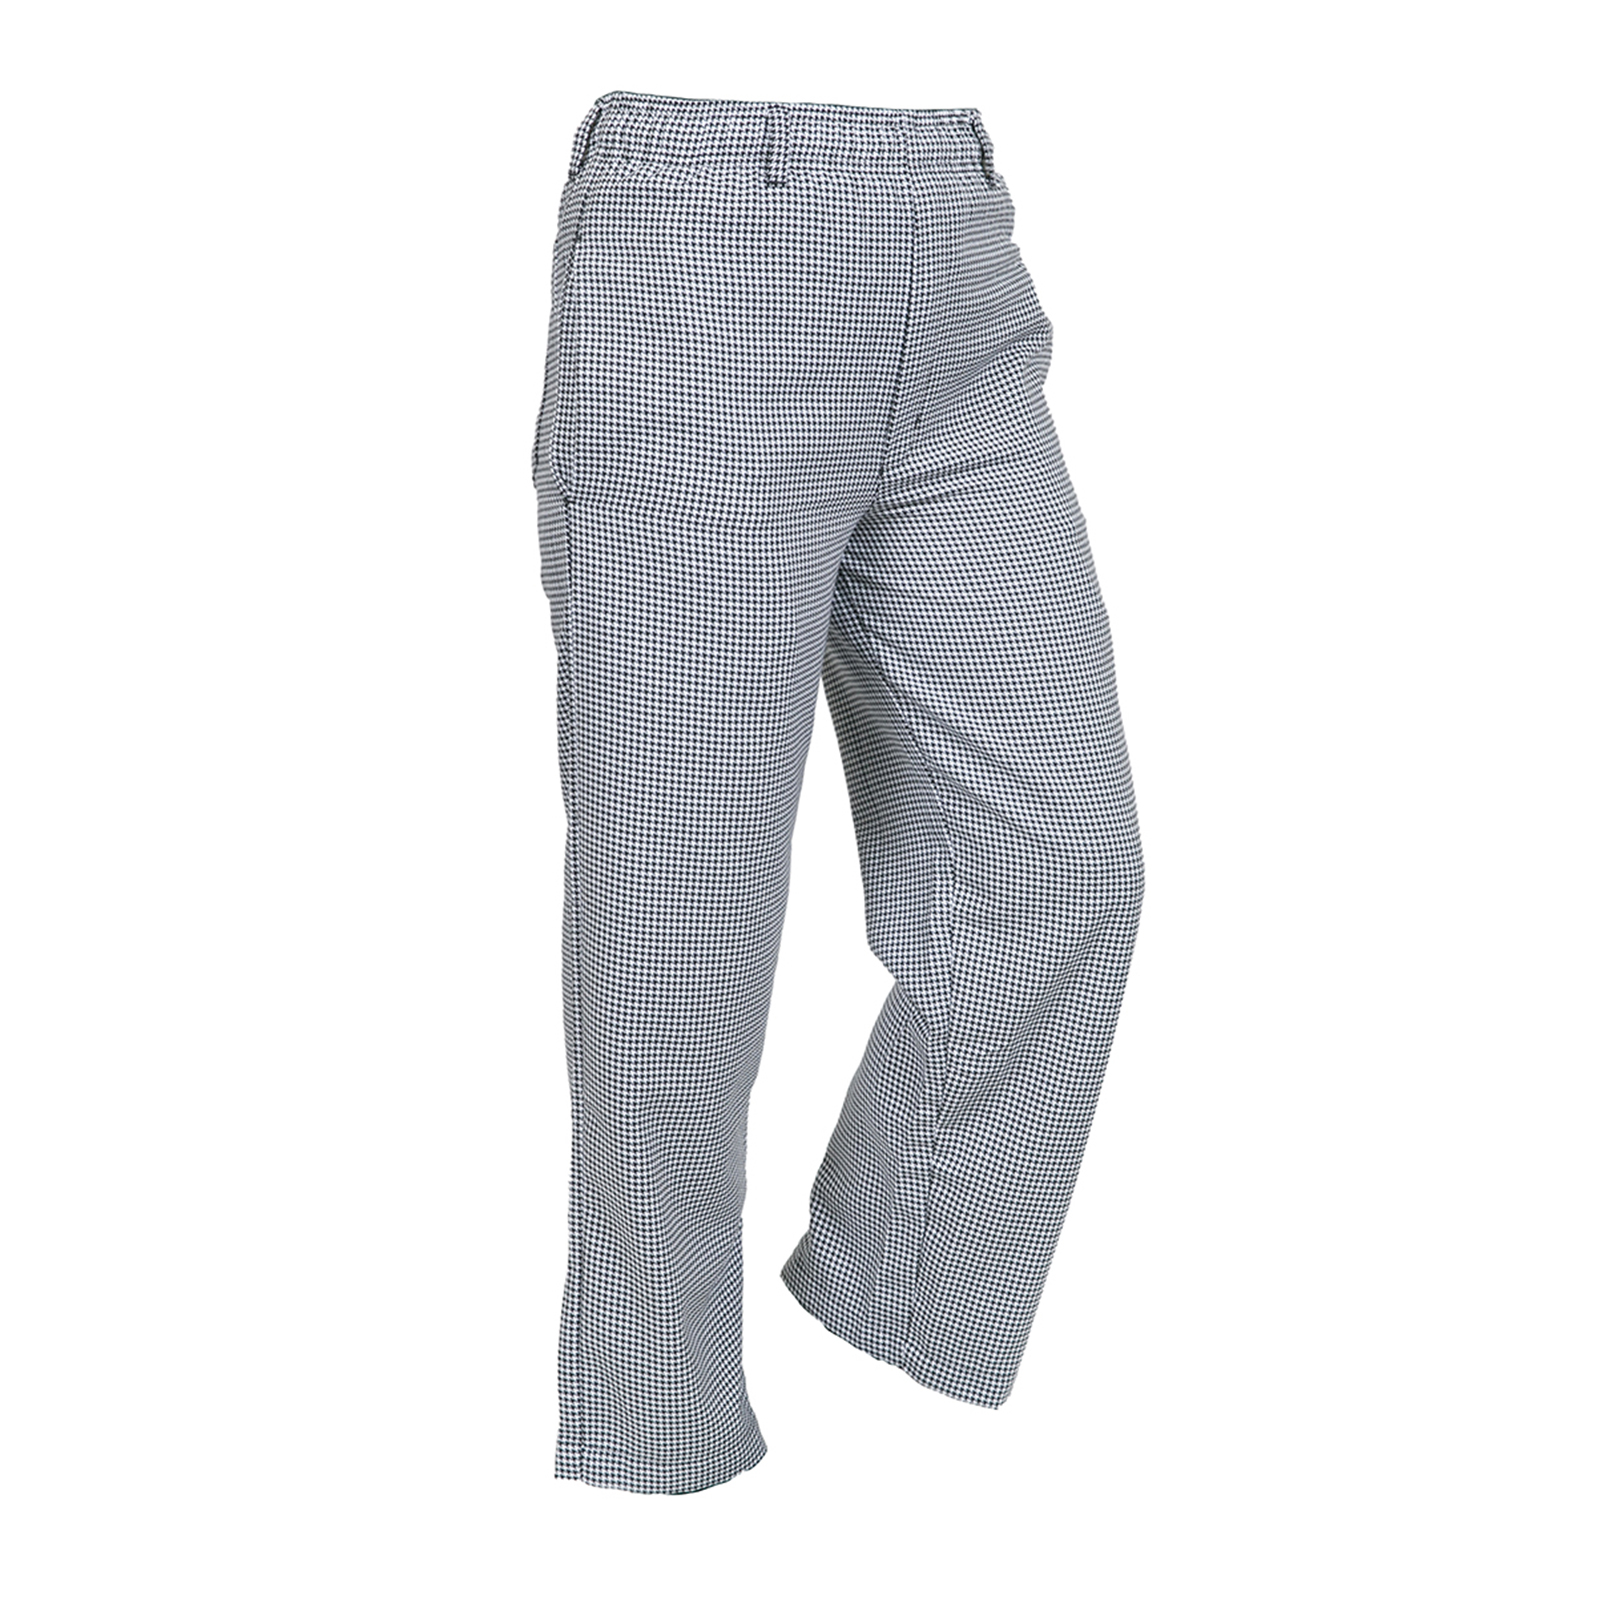 Mercer Culinary M61050HT1X chef's pants